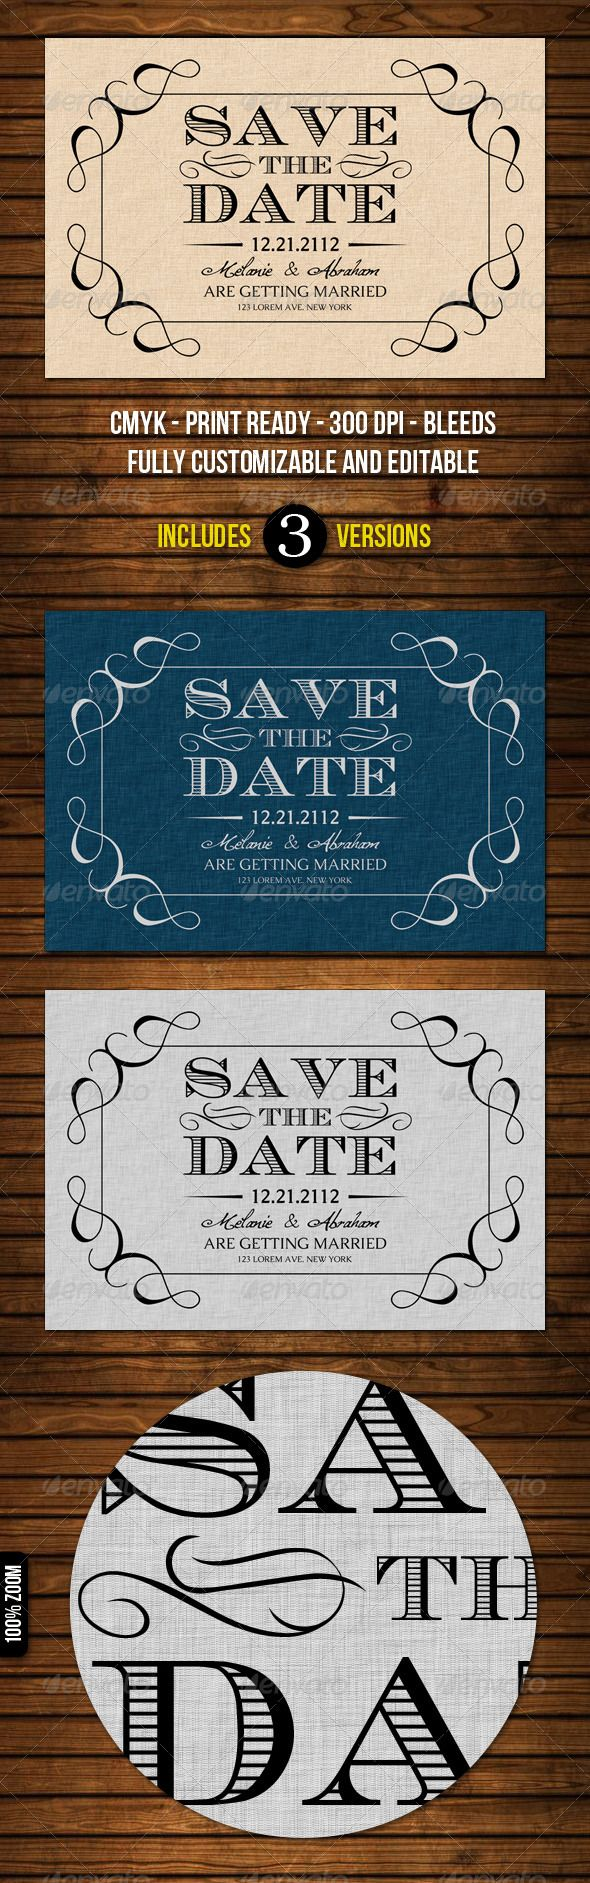 Old Vintage Save The Date Cards. Retro Wedding InvitationsVintage ...